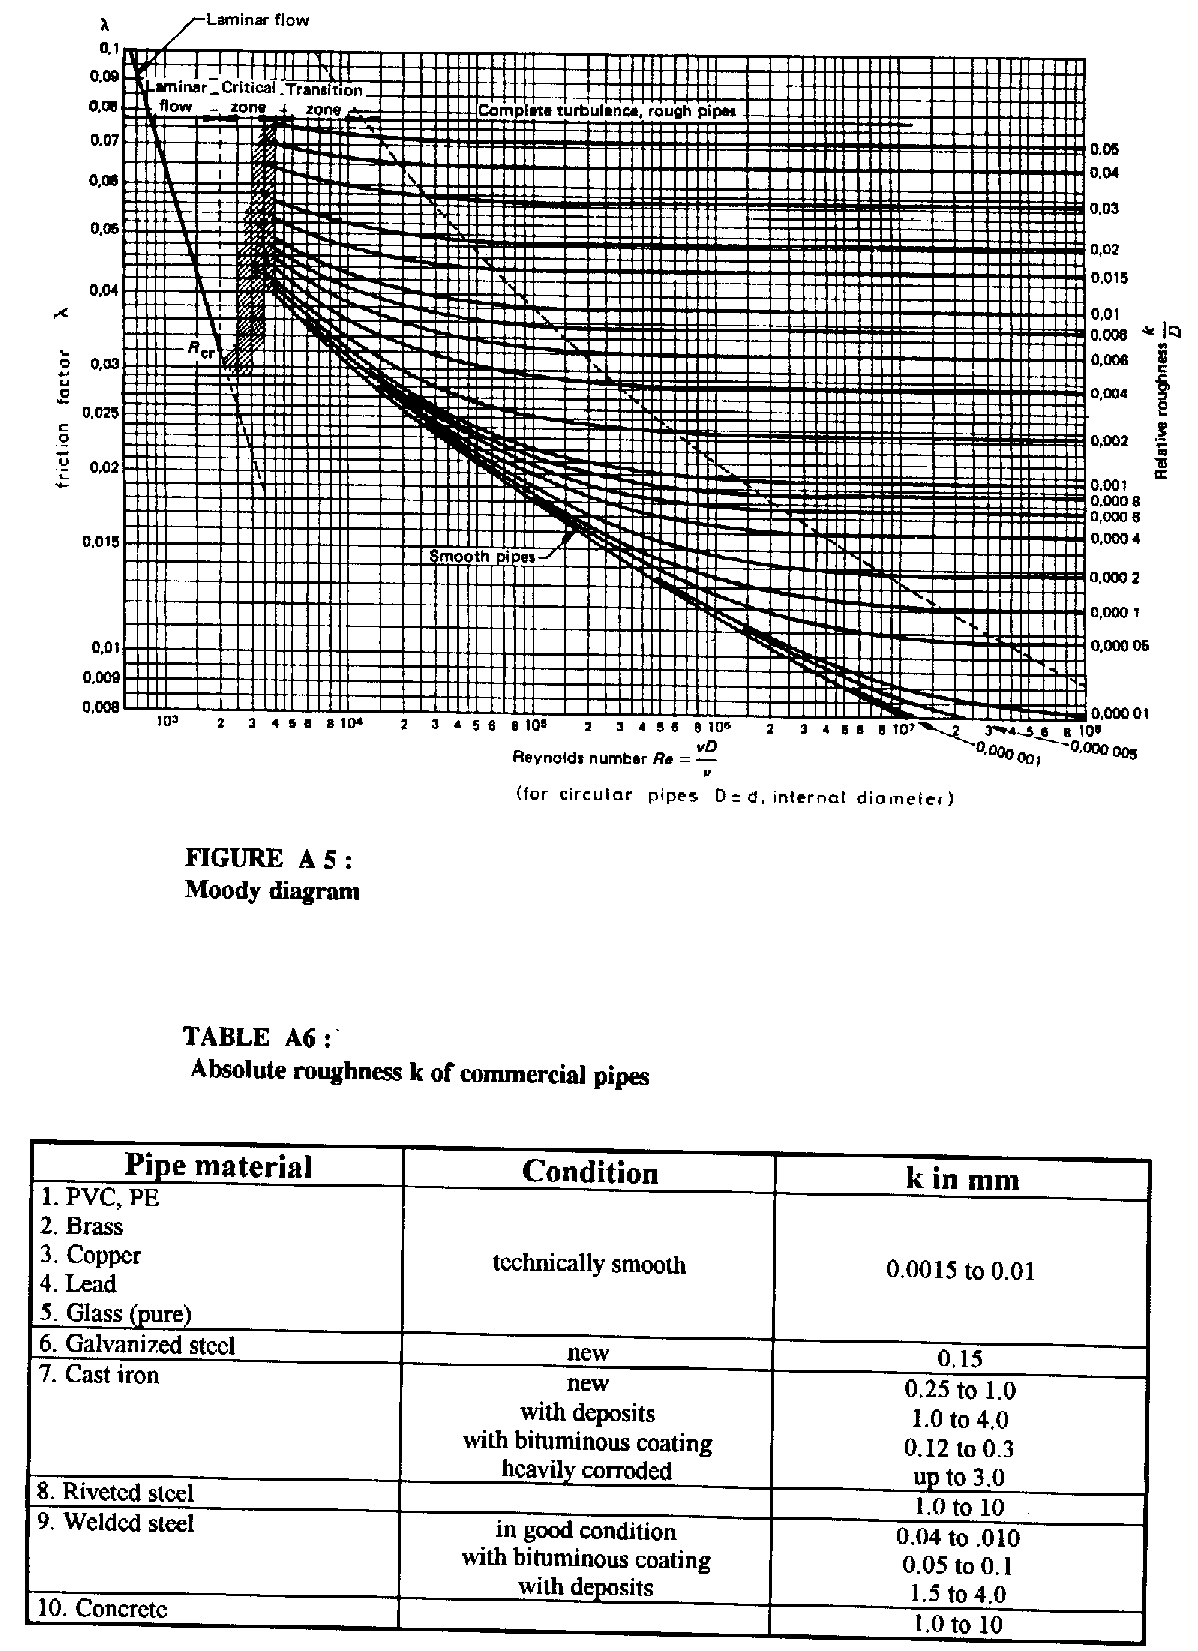 Manual on pumps used as turbines 4 energy and pressure line 5 figure a 5moody diagram ccuart Gallery